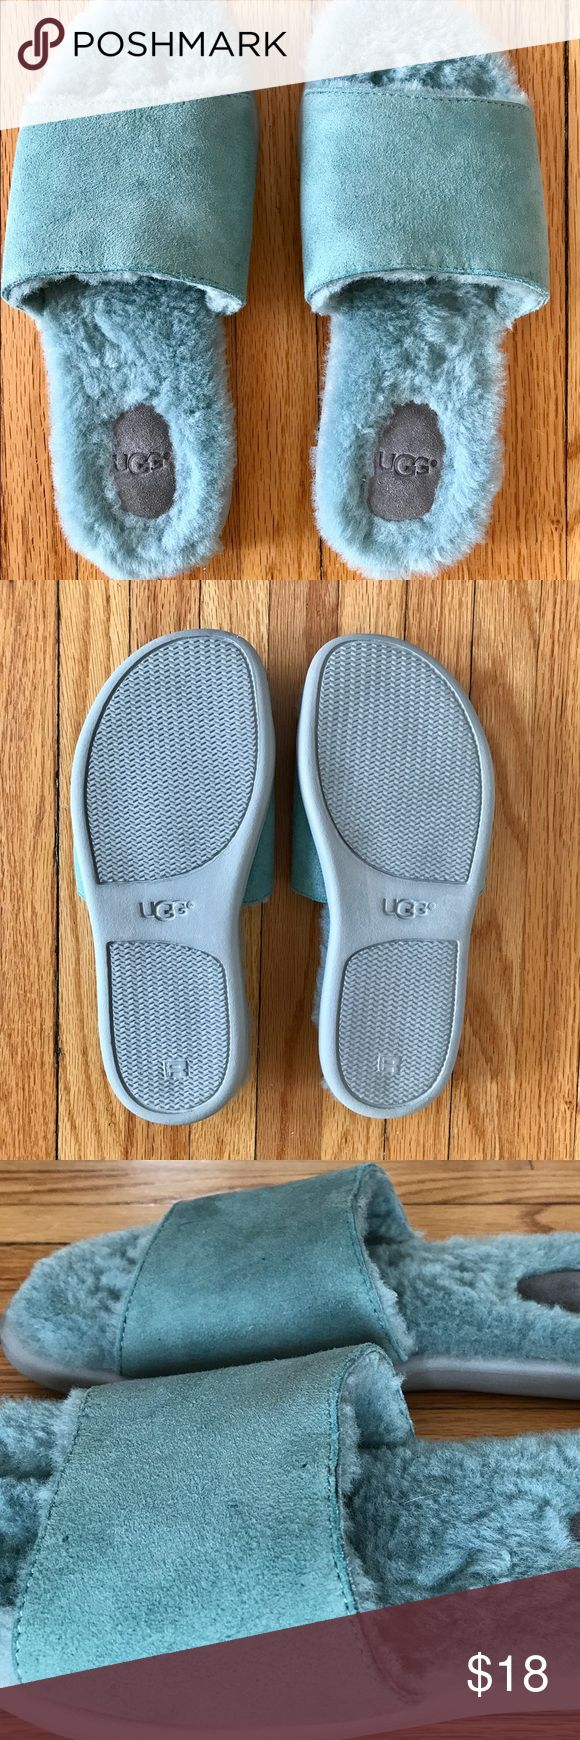 UGG Breezy Slide Shearling Slipper - SZ 7! Only wore 2 times indoors w/socks 😊. Lovely seafoam color. Fully lined genuine sheepskin. Suede upper/w embossed logo on footbed. Durable rubber sole for indoor and outdoor use. Treadlite by UGG™ outsole for ultimate comfort. UGG Shoes Slippers